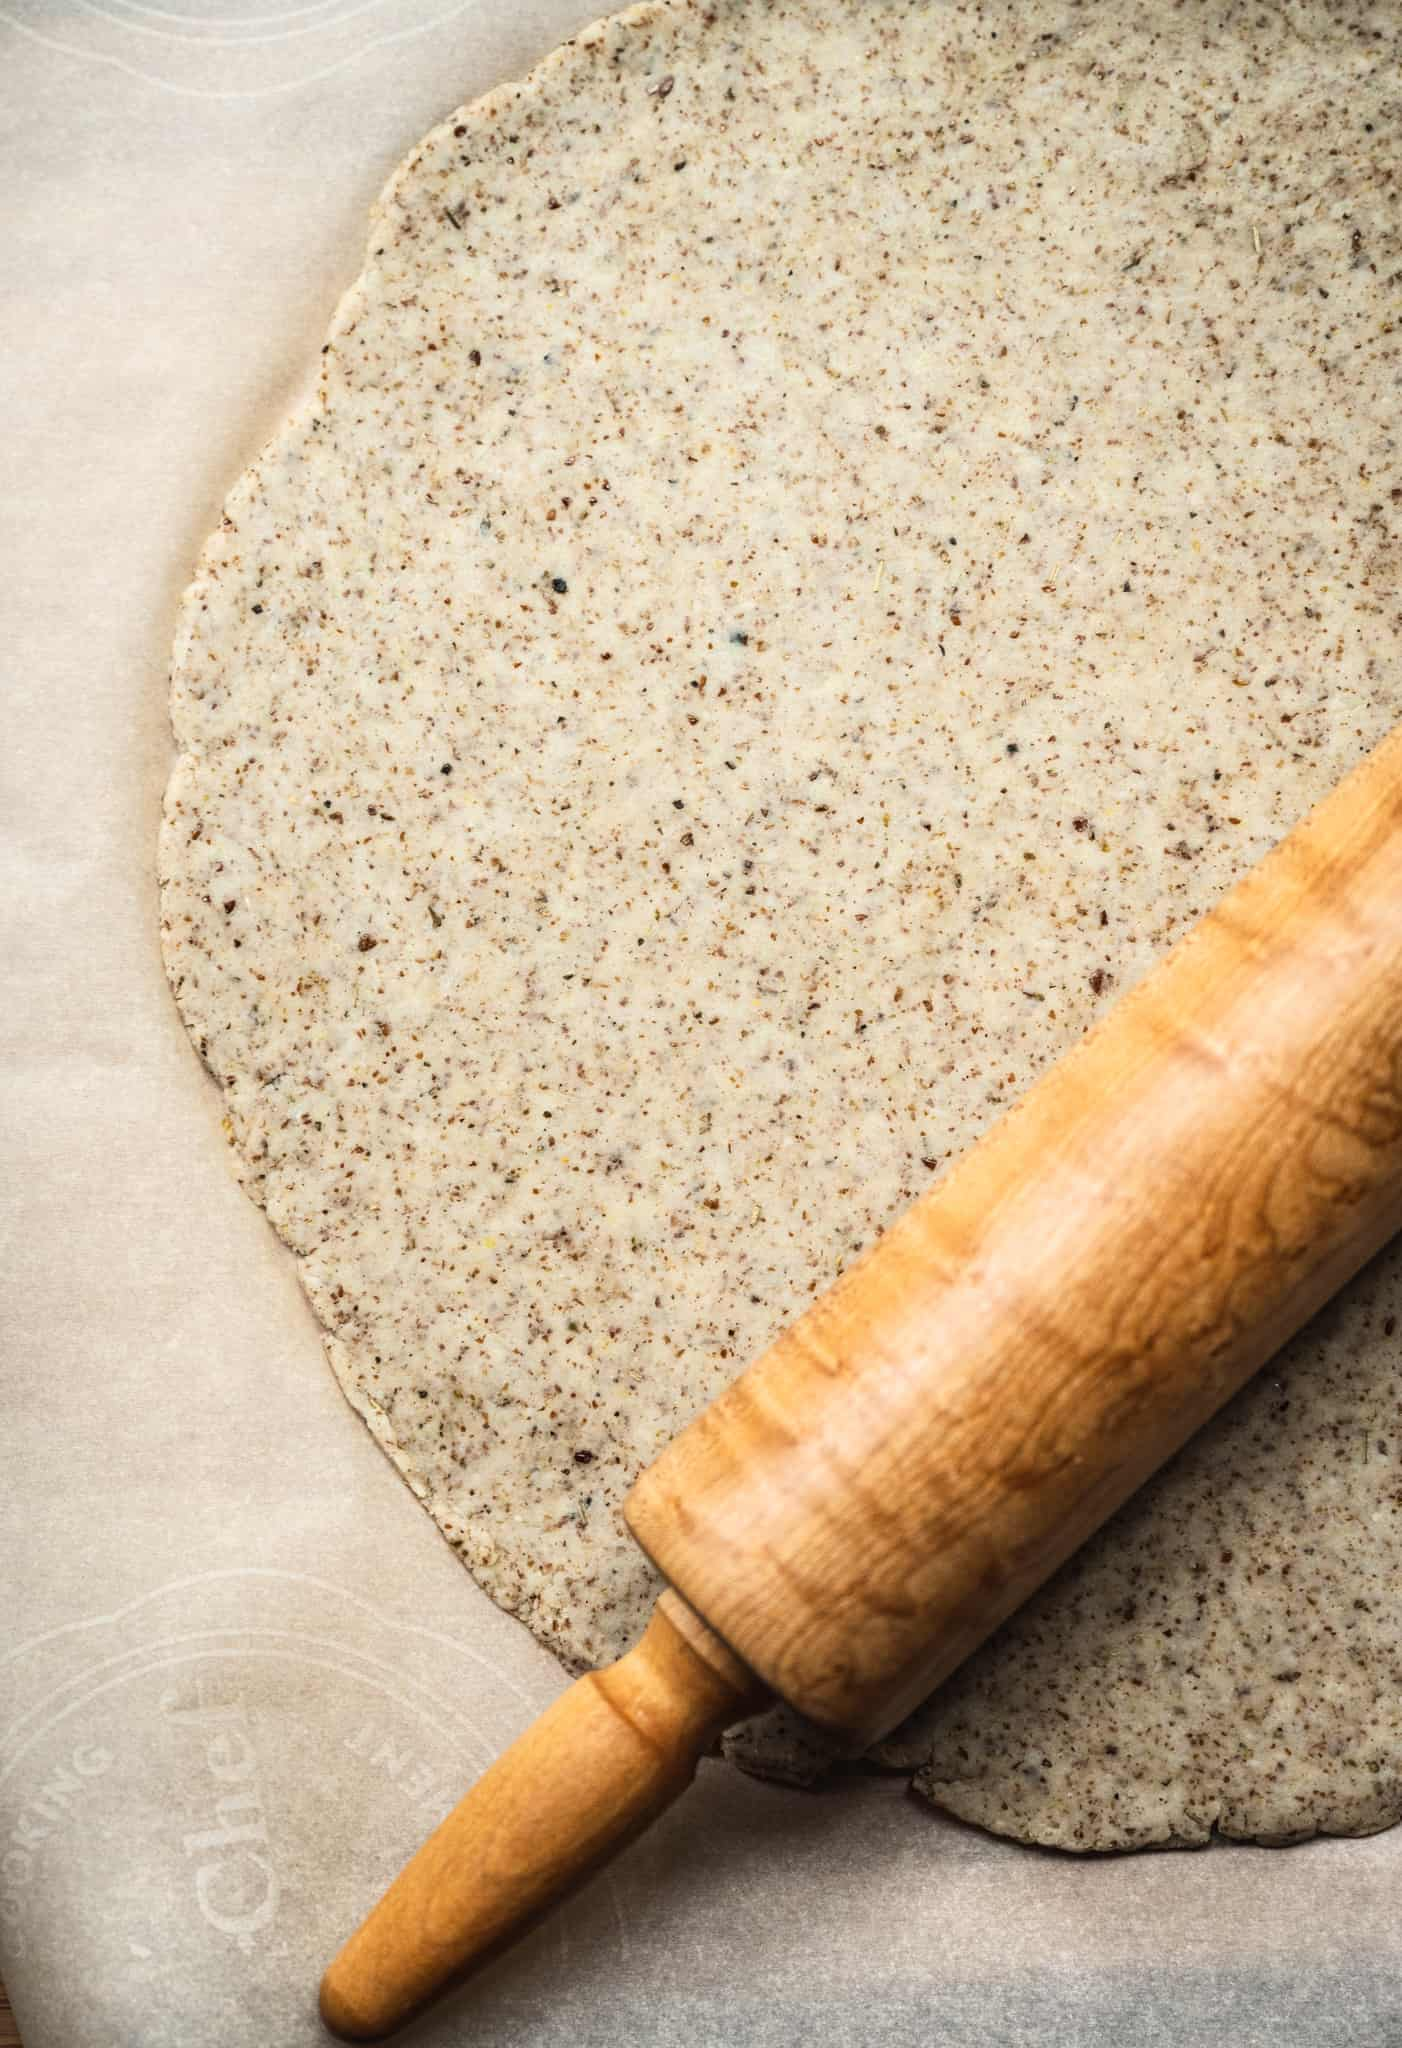 Overhead view of pizza crust being rolled out with rolling pin on parchment paper